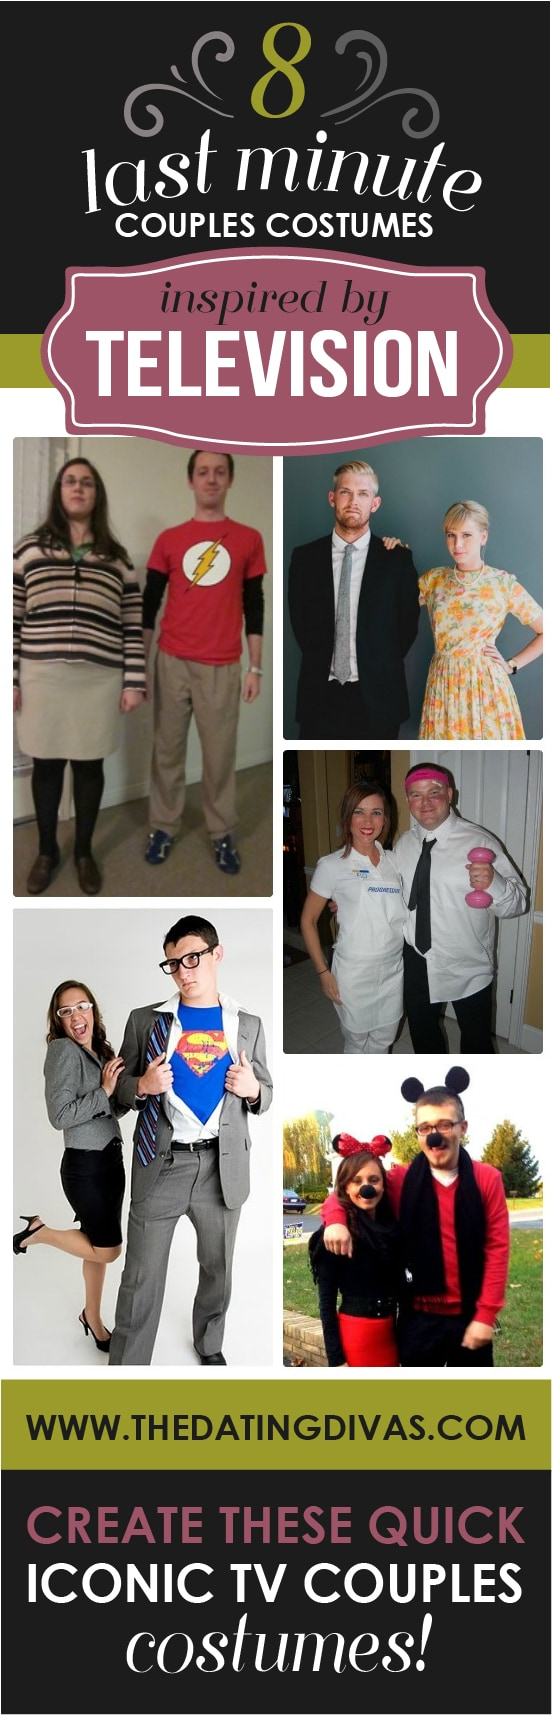 50 Last Minute Couples Halloween Costume Ideas The Dating Divas Shortcircuitmovietshirtfunnyrudemensretro Costumes Inspired By Tv